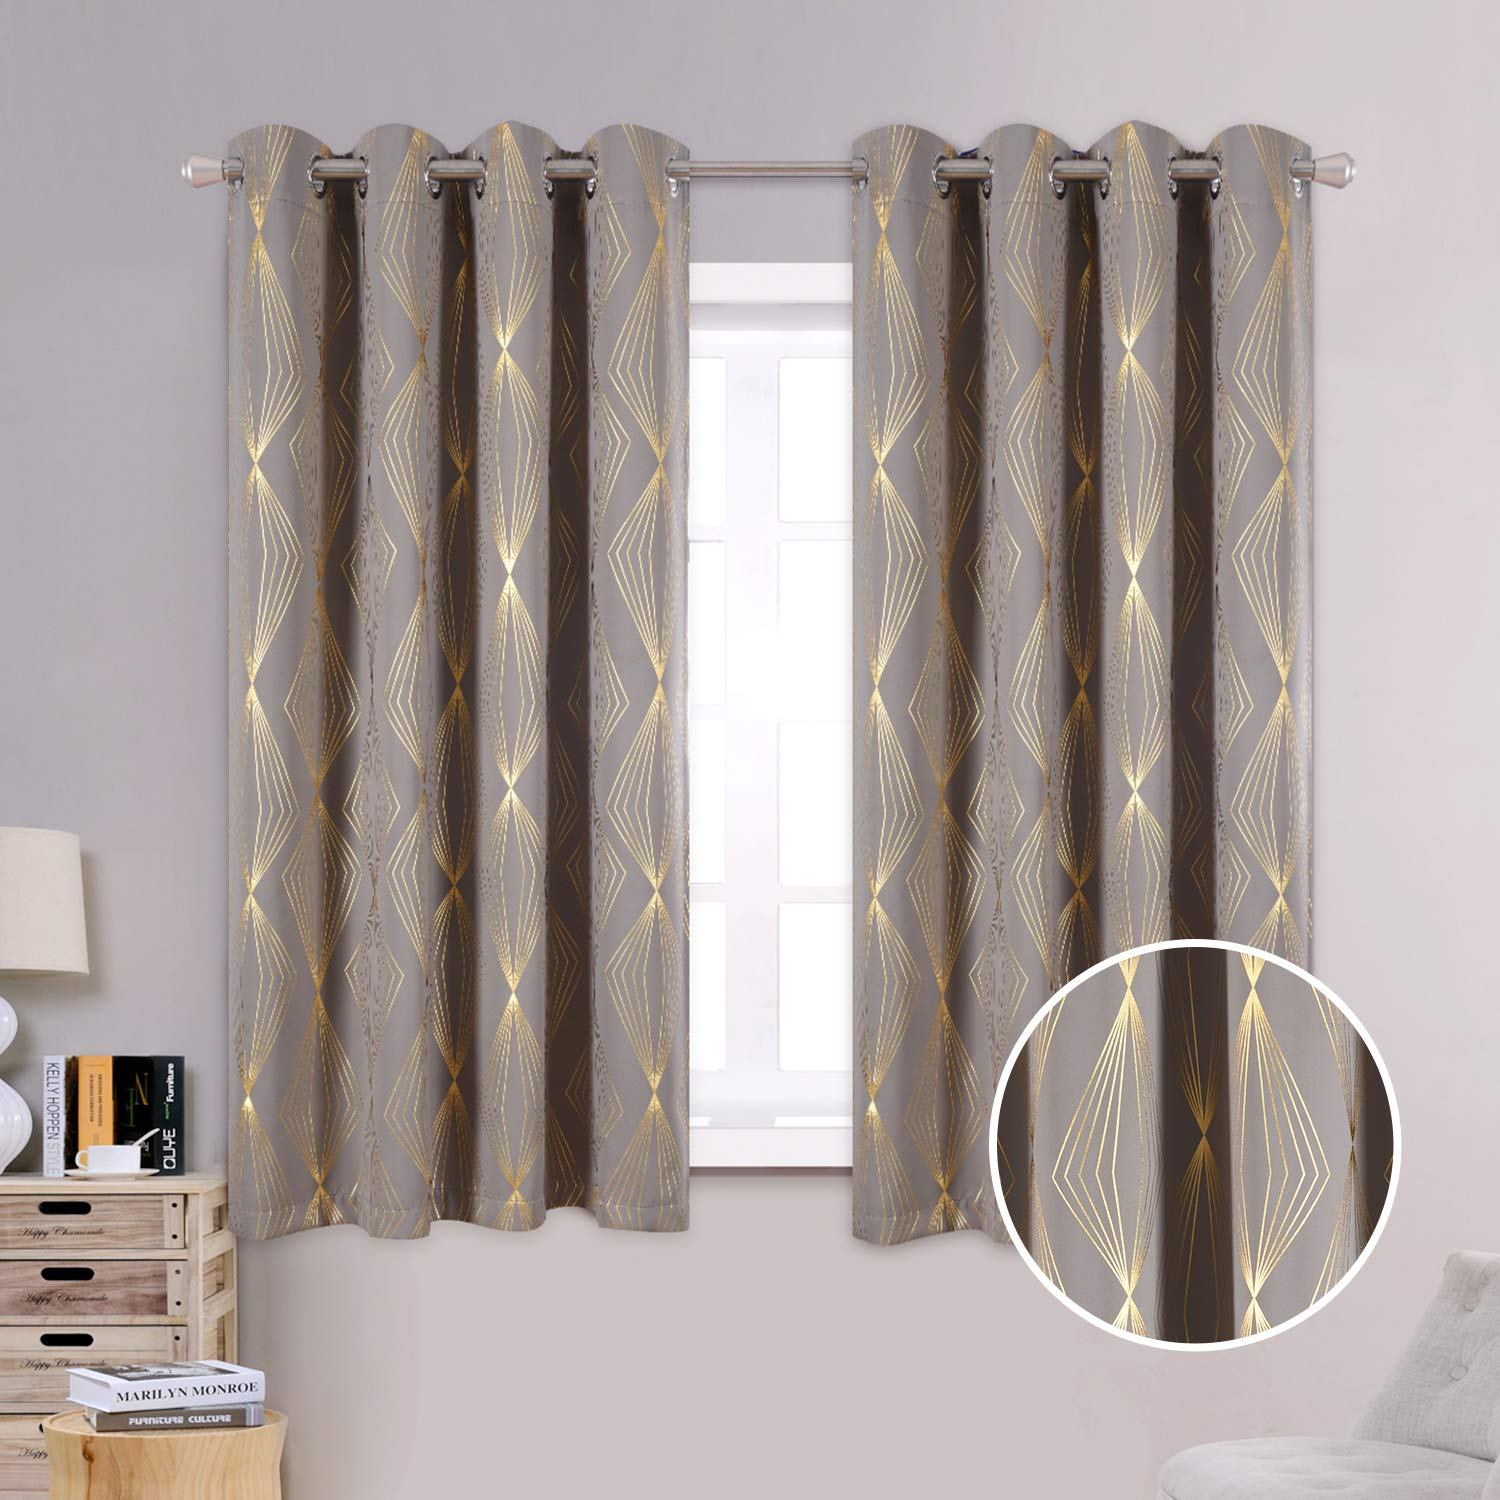 Anjee Blackout Curtains for Study Room with Foil Printed Diamond Pattern, 63 Inches Window Drapes with Grommet Top for Light Blocking, 52 x 63 Inches, Grey